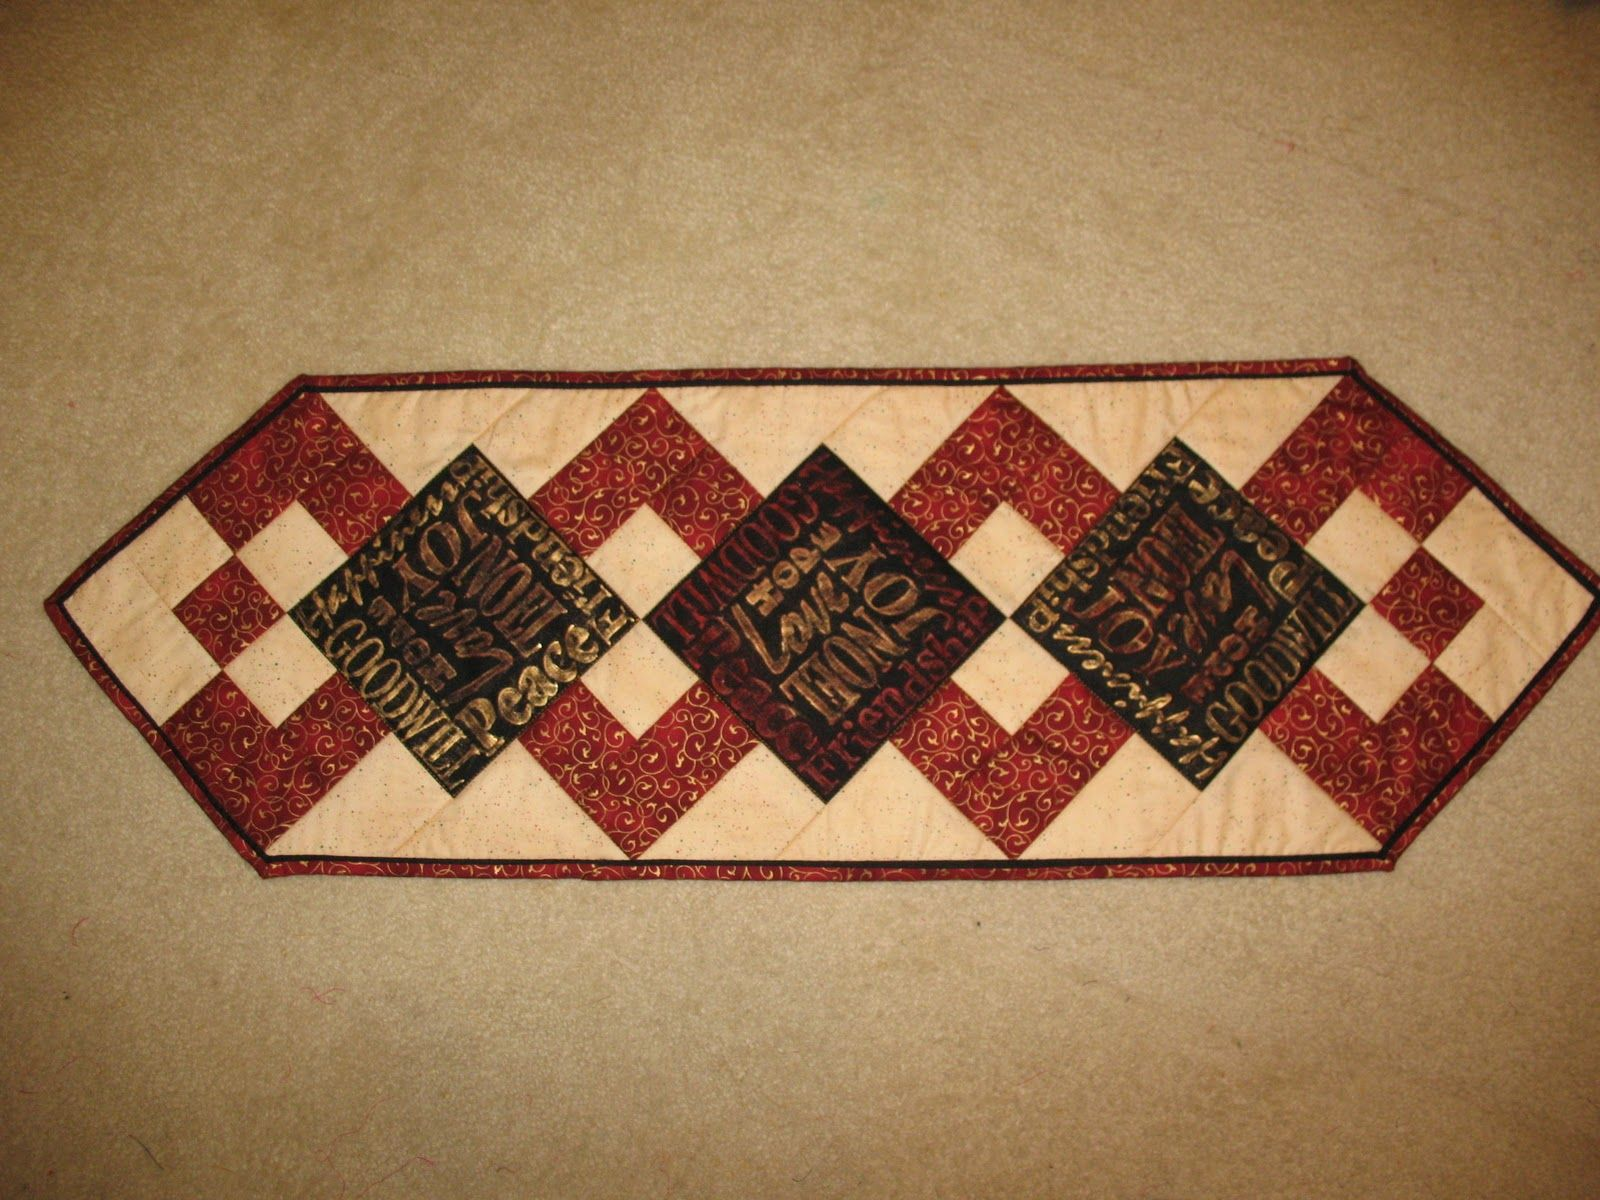 Free Print Quilted Table Runners | ... make and quilt a table ... : quilted table runner patterns - Adamdwight.com